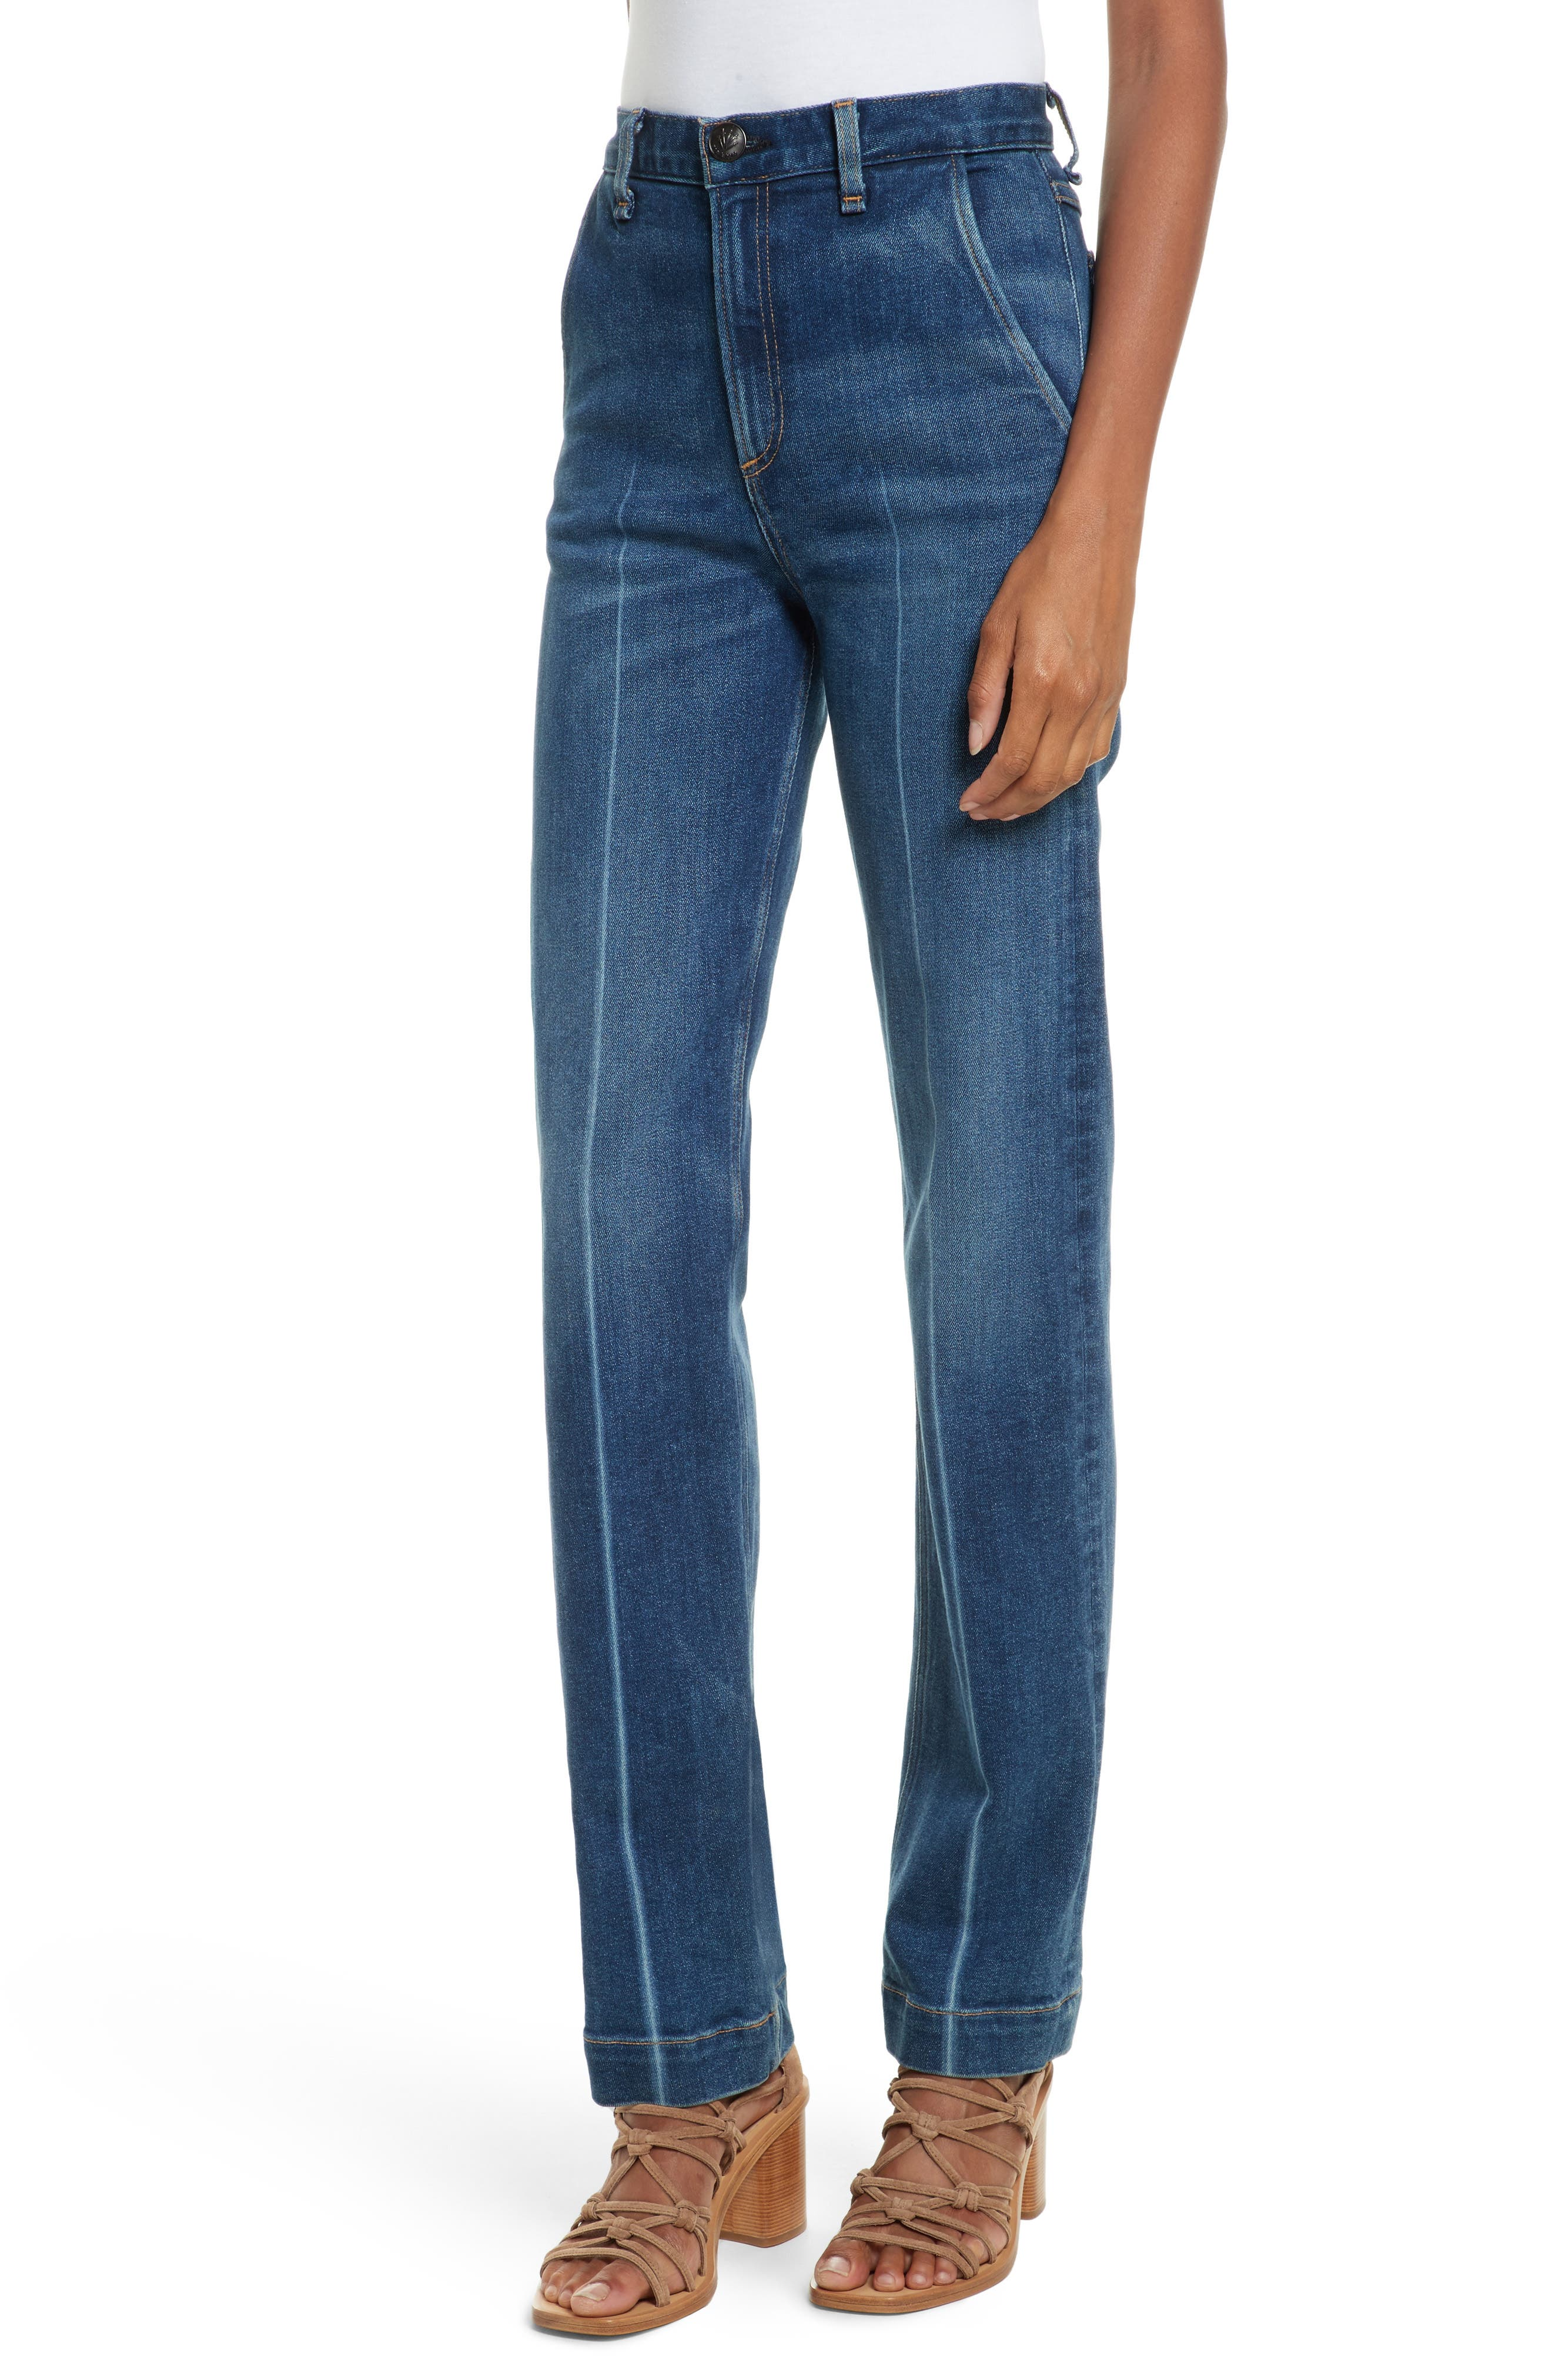 Justine High Waist Trouser Jeans,                             Main thumbnail 1, color,                             Highwater